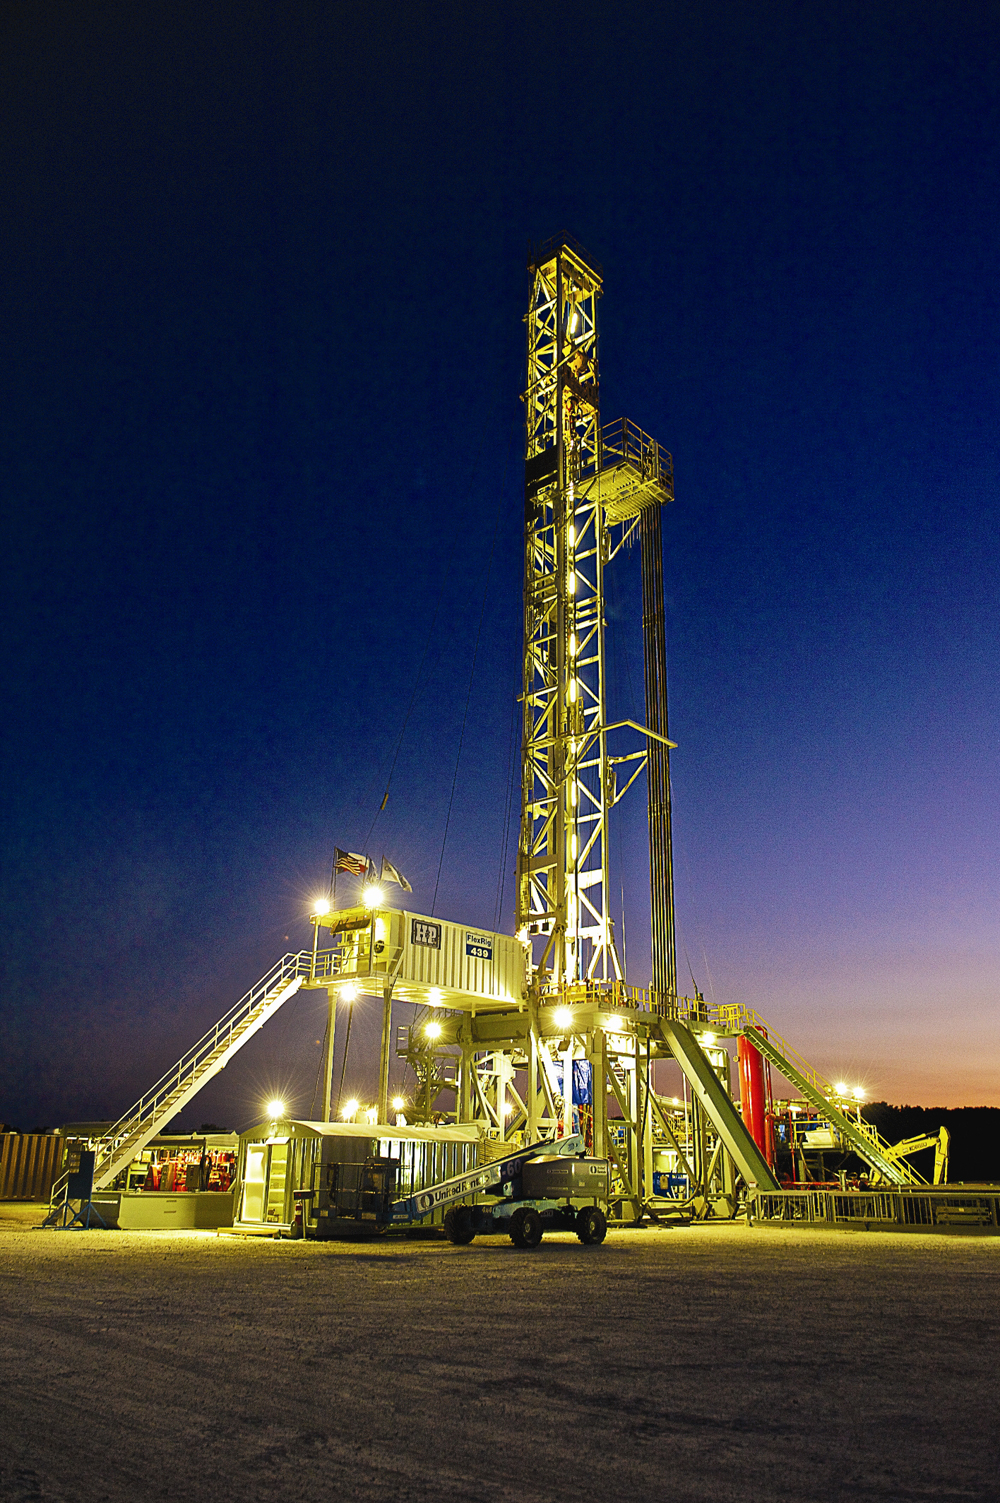 Eagle Ford Shale Drilling Rig in Texas.